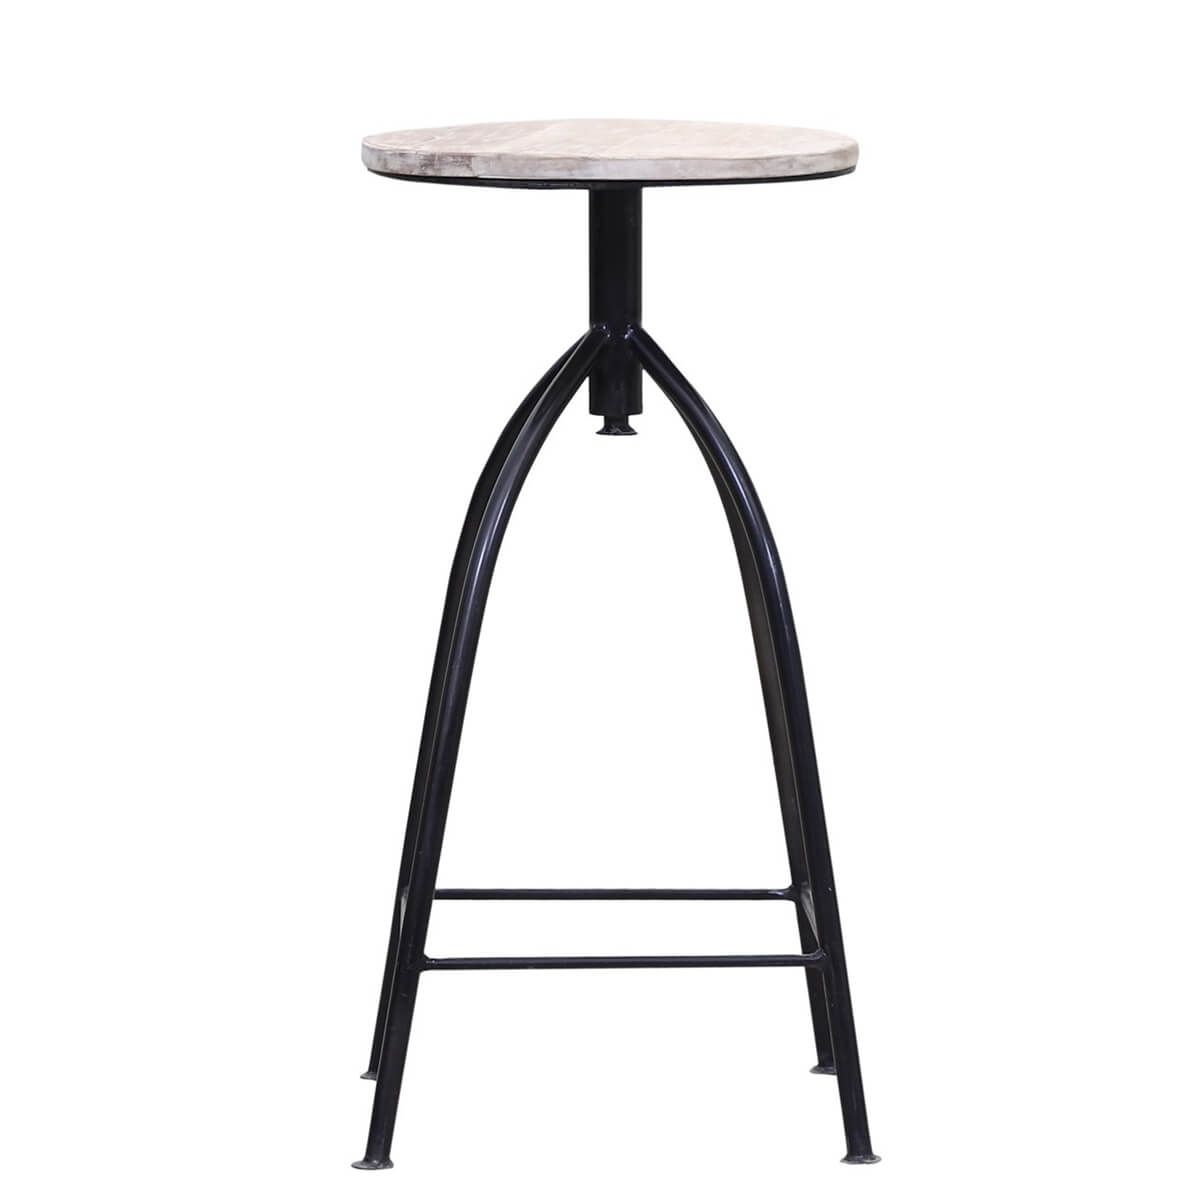 Pesina Reclaimed Wood Iron Leg Industrial Bar Stool